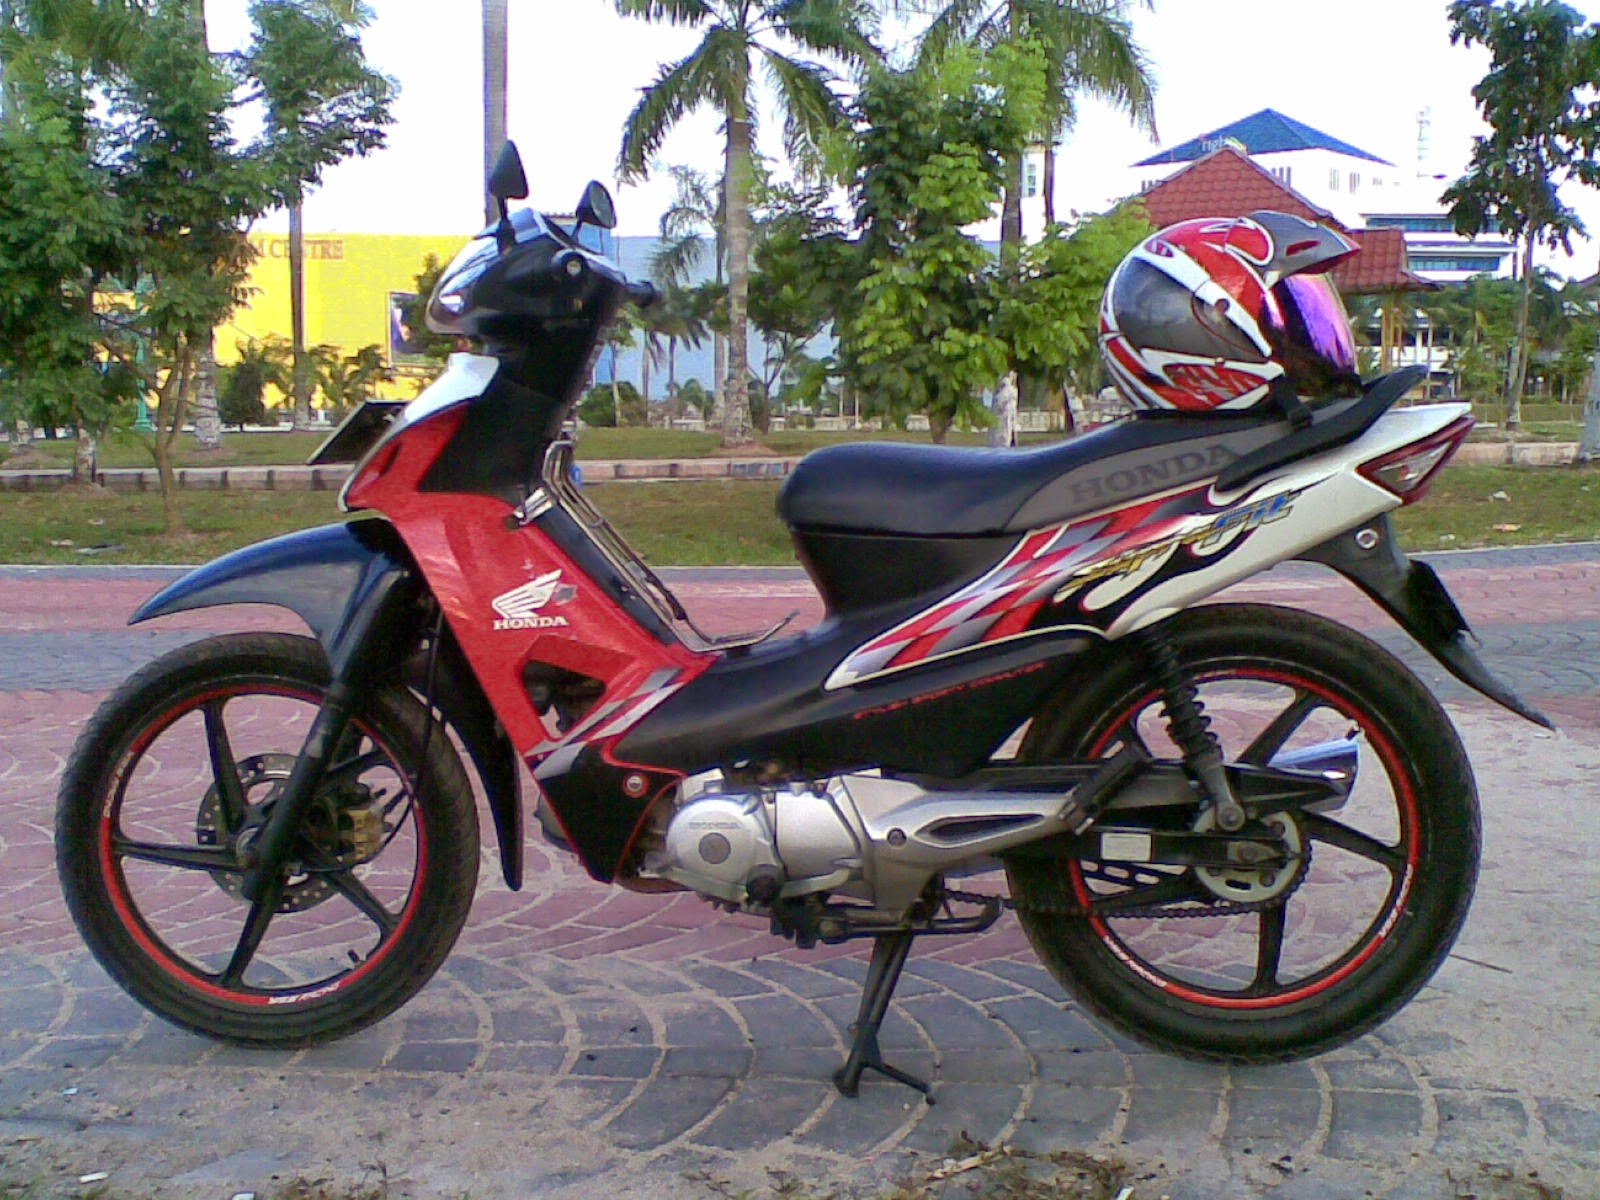 Download Modifikasi Motor Supra X 125 Minimalis Terbaru Palm